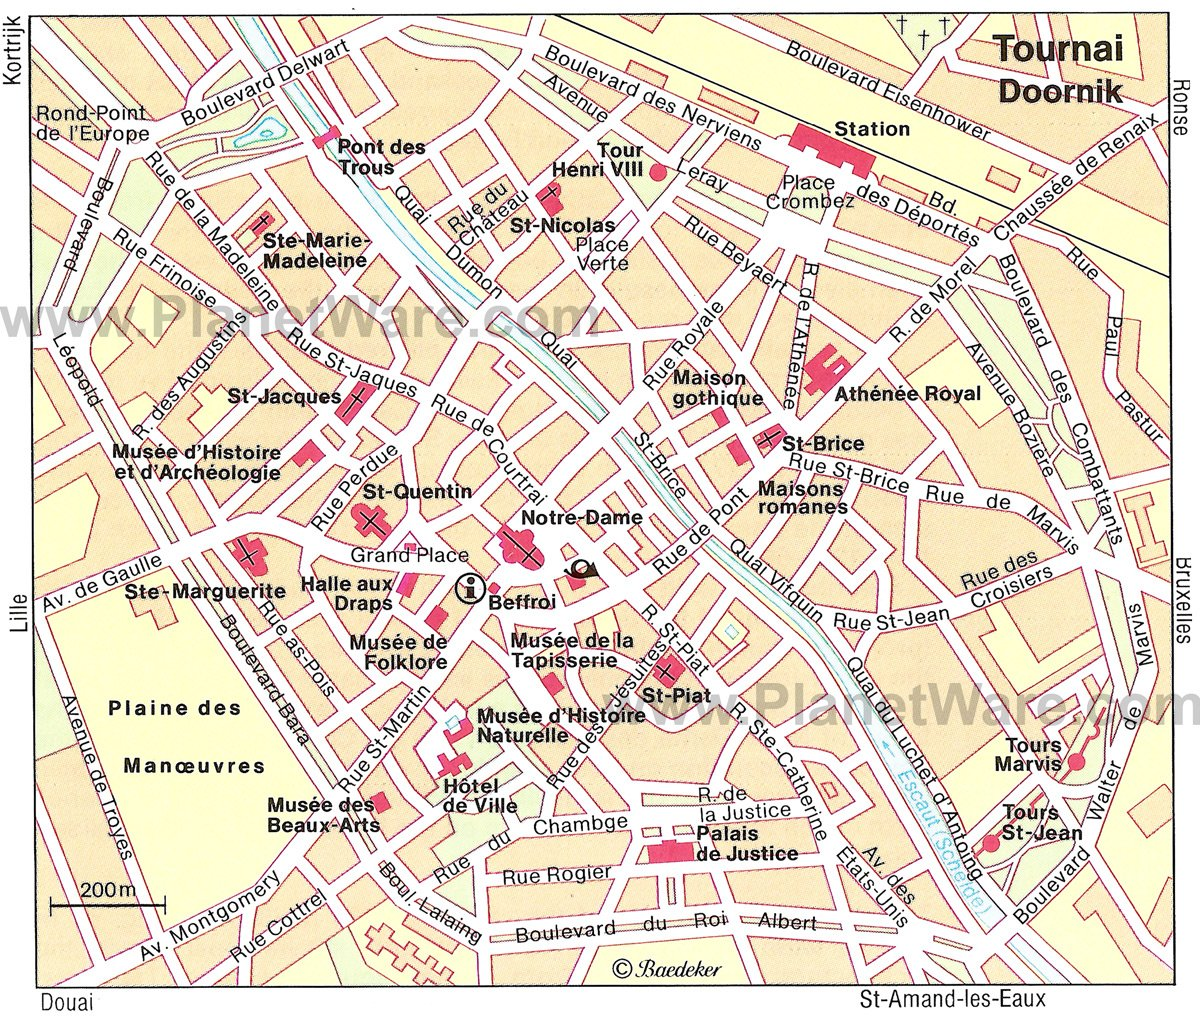 14 TopRated Tourist Attractions in Mons Bergen – Paris Tourist Attractions Map